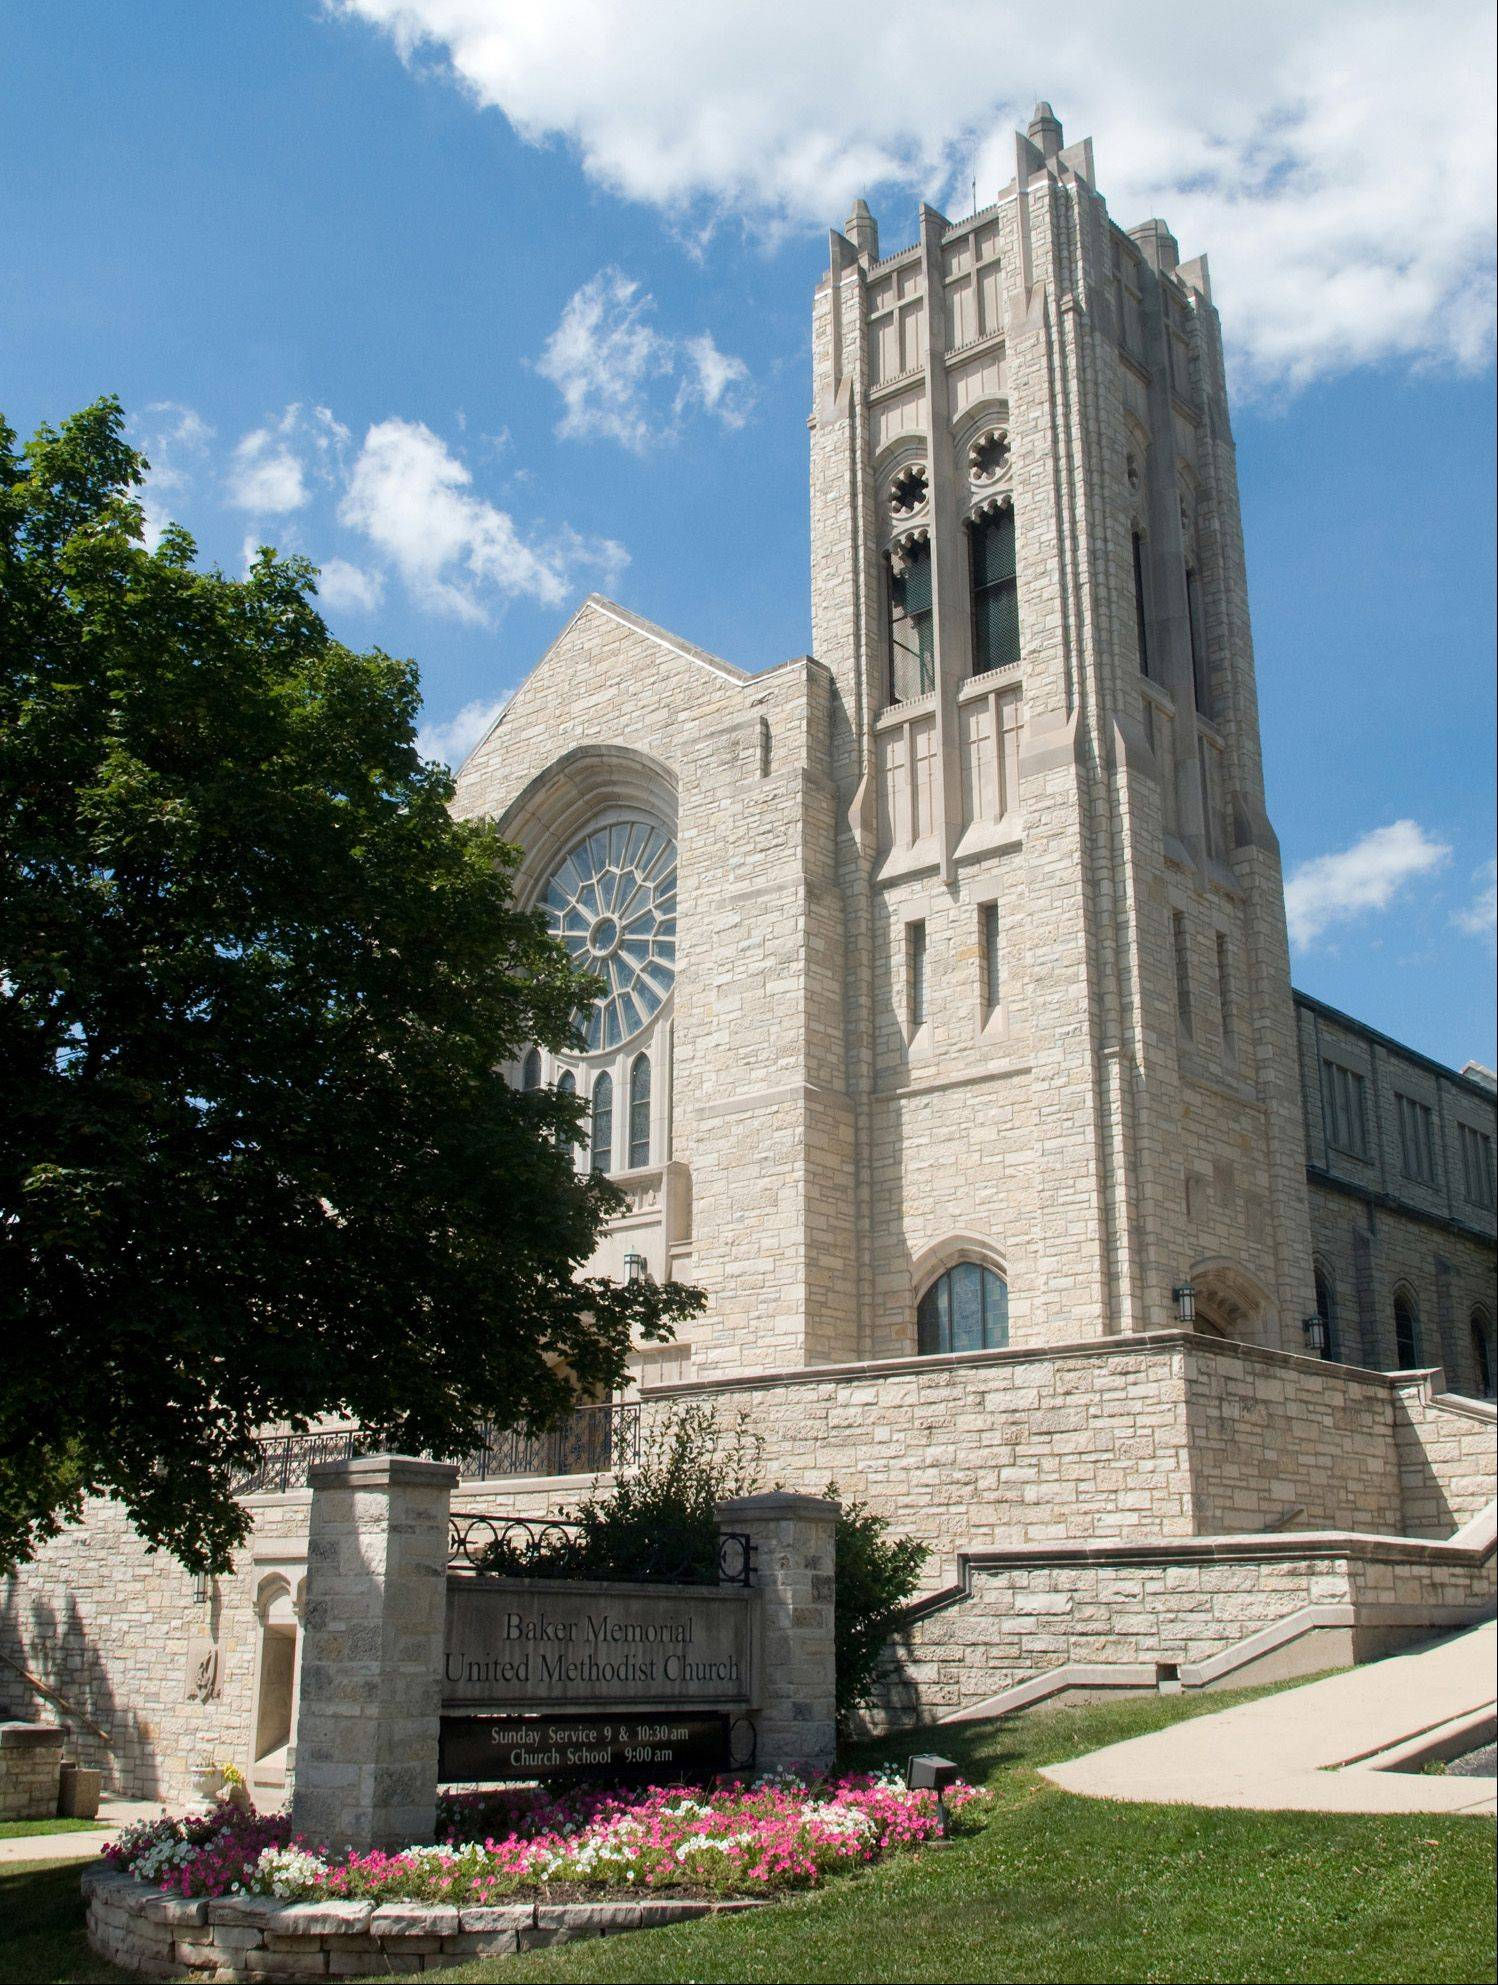 Baker Memorial United Methodist Church is celebrating its 175th anniversary in St. Charles this year and will have an open house and will host an open house Sunday, July 29.